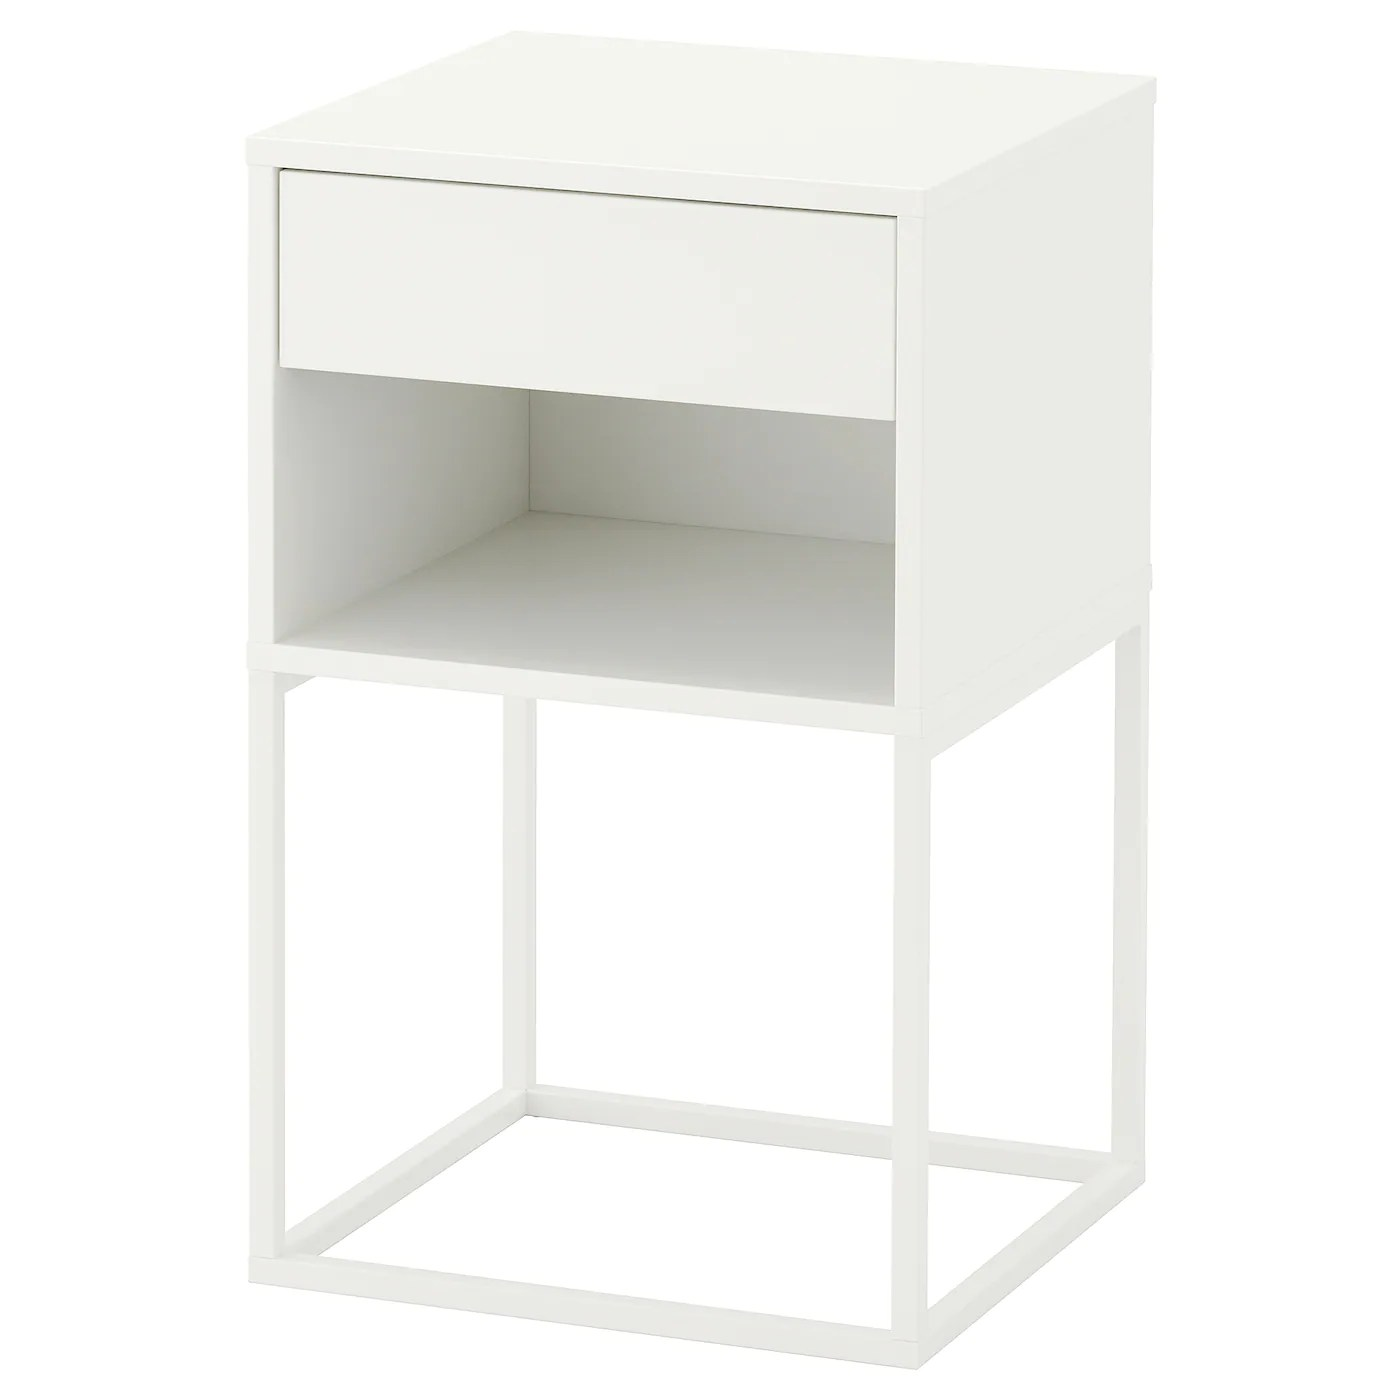 Table De Chevet Murale Ikea Vikhammer Table Chevet Blanc 40 X 39 Cm Ikea